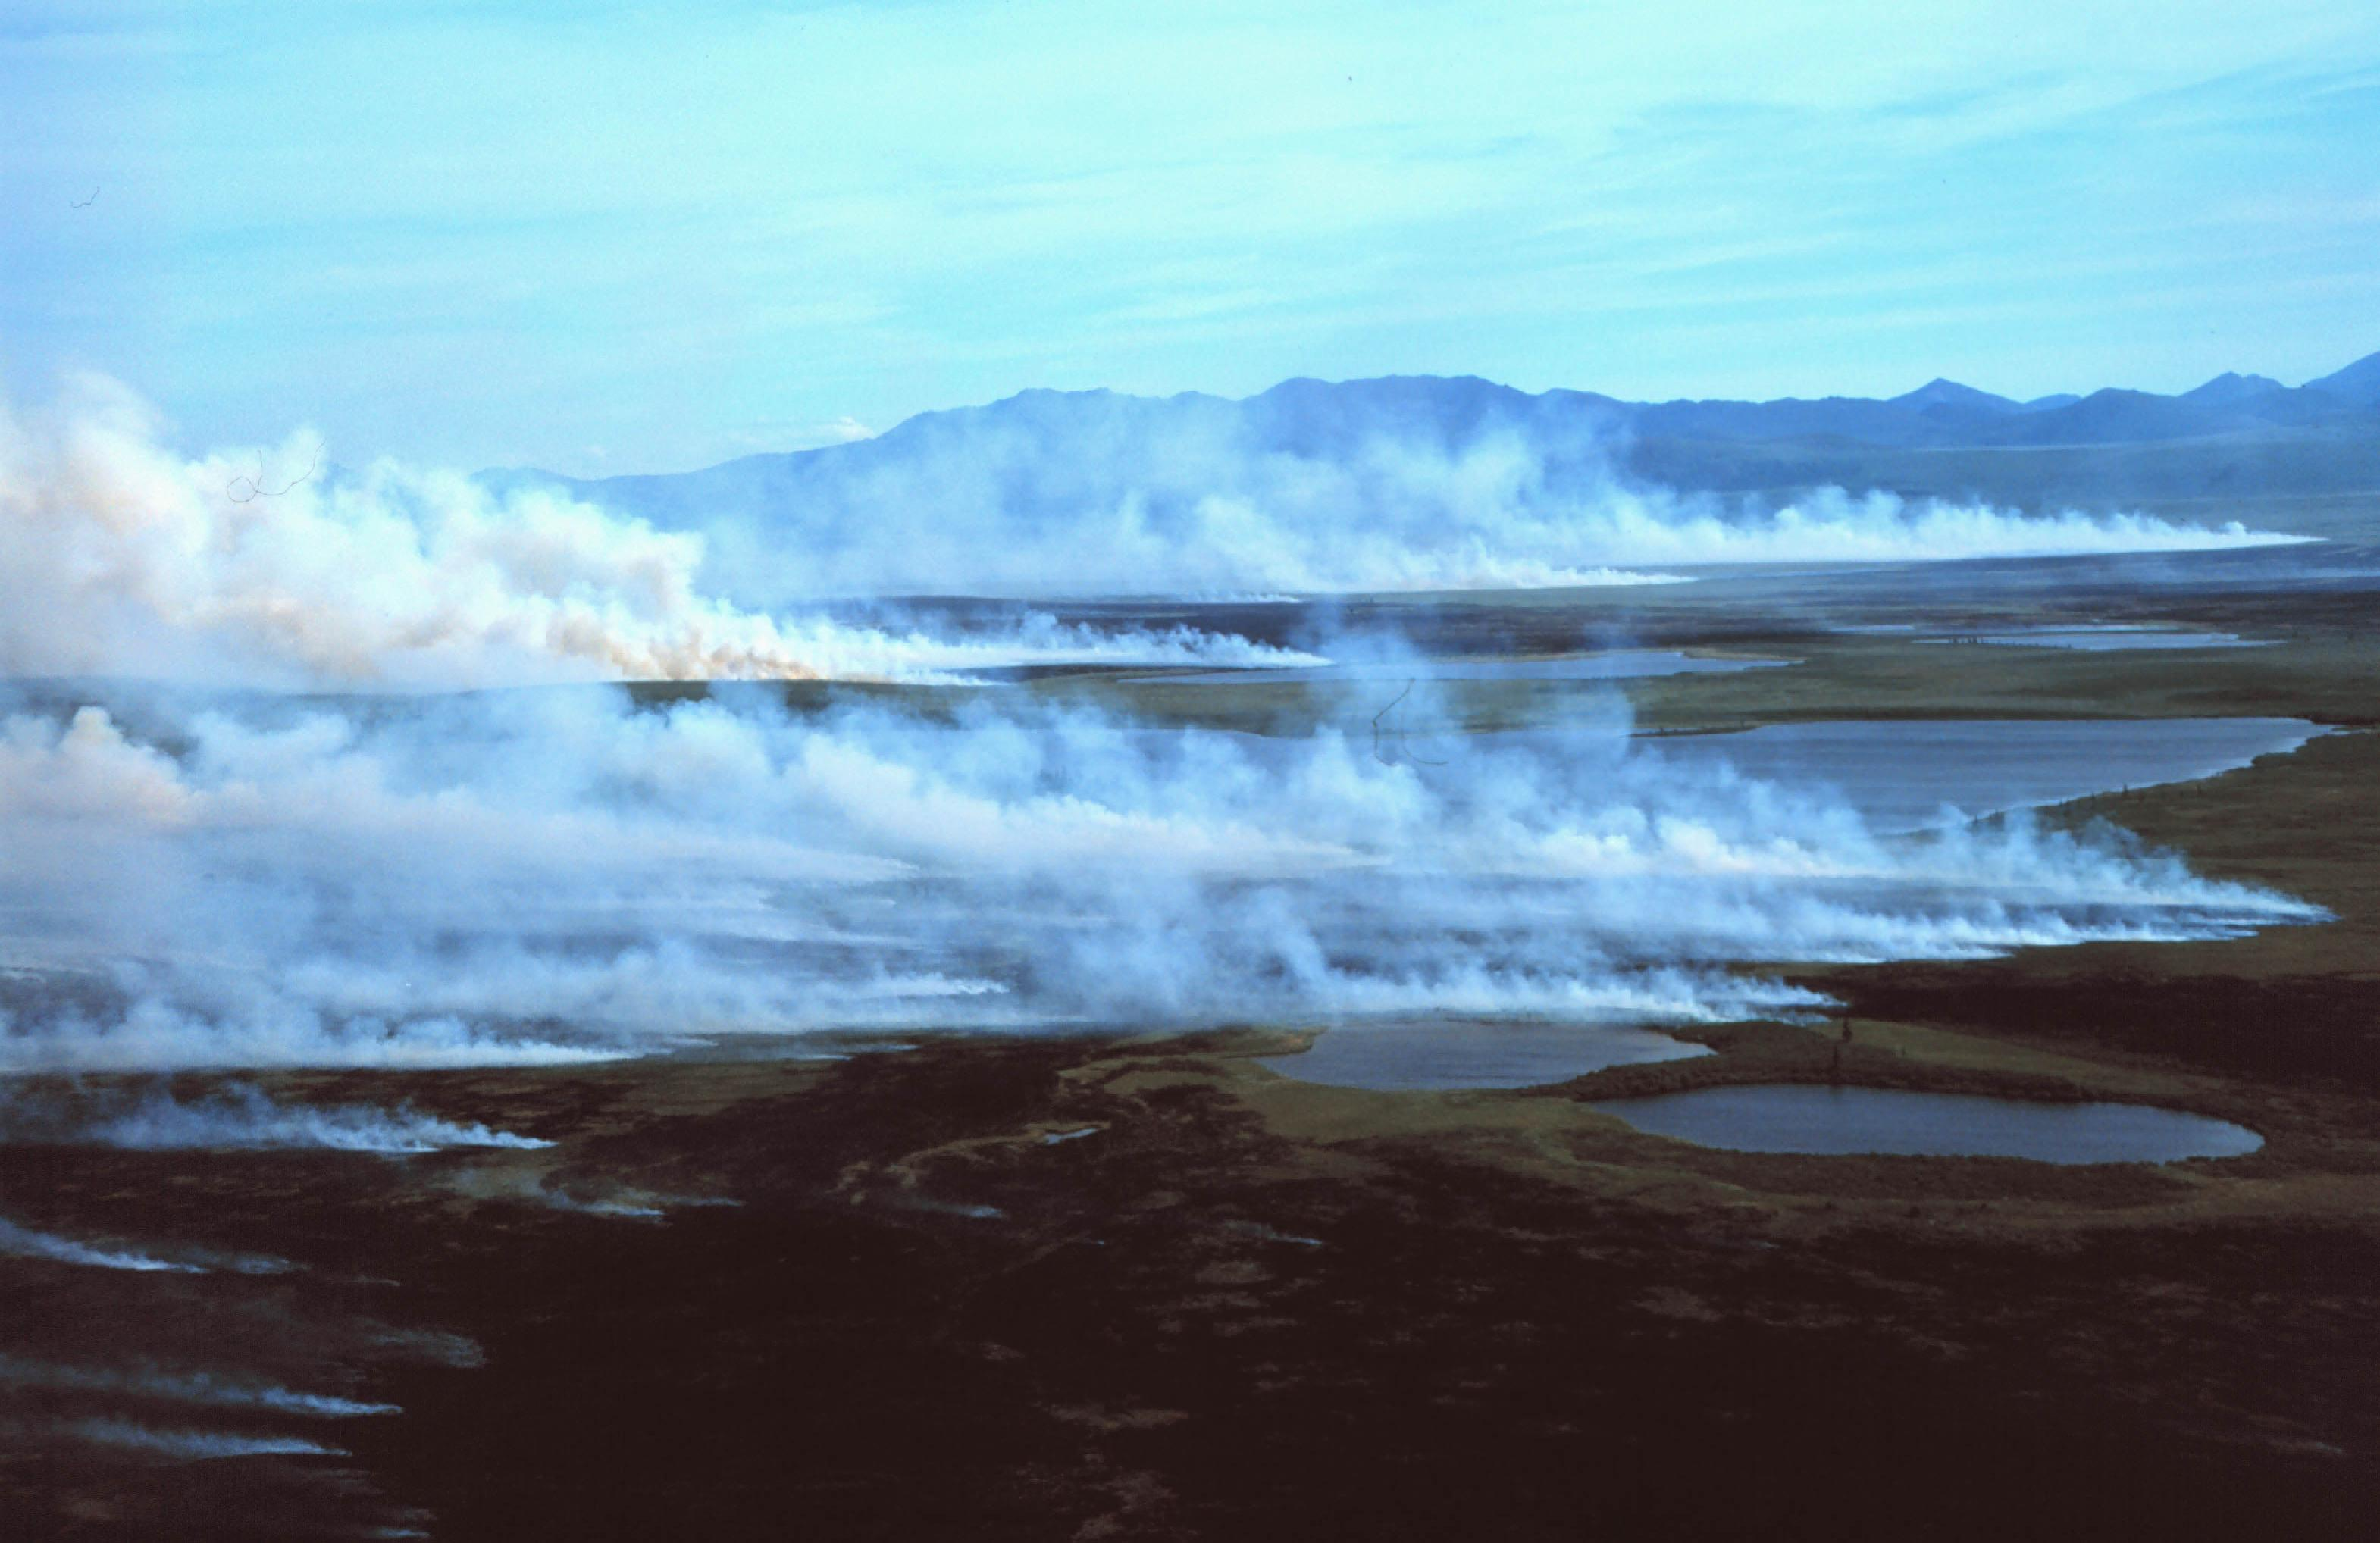 White smoke rises from the tundra with mountains in the background.